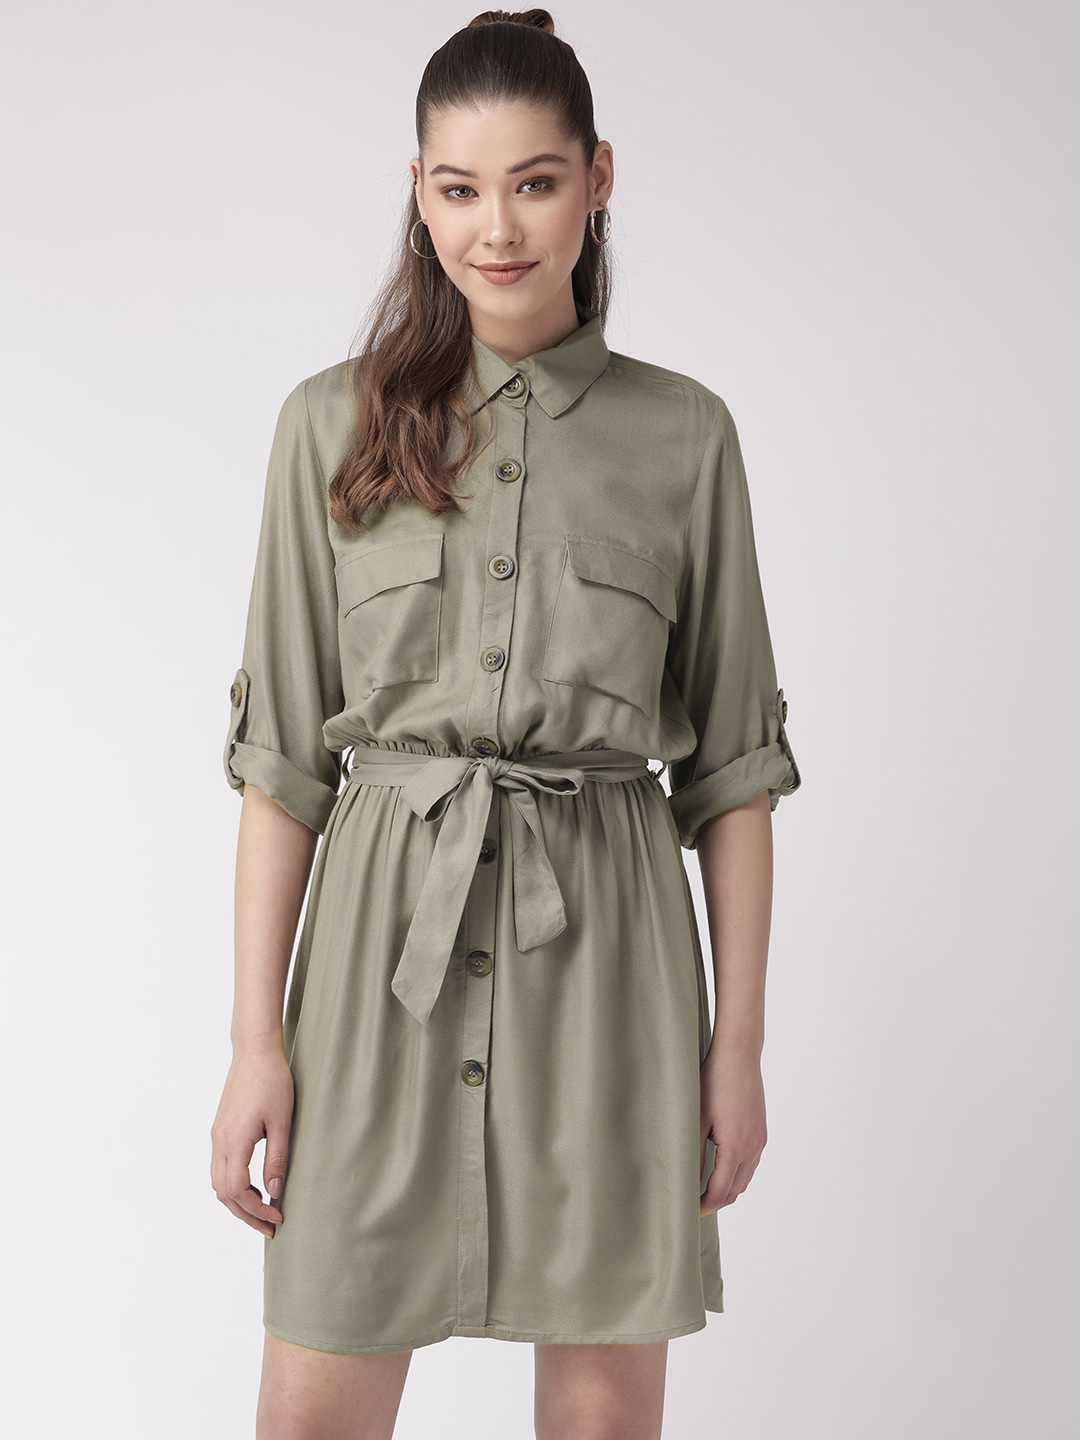 Dresses-Green The Style Breakout Dress1